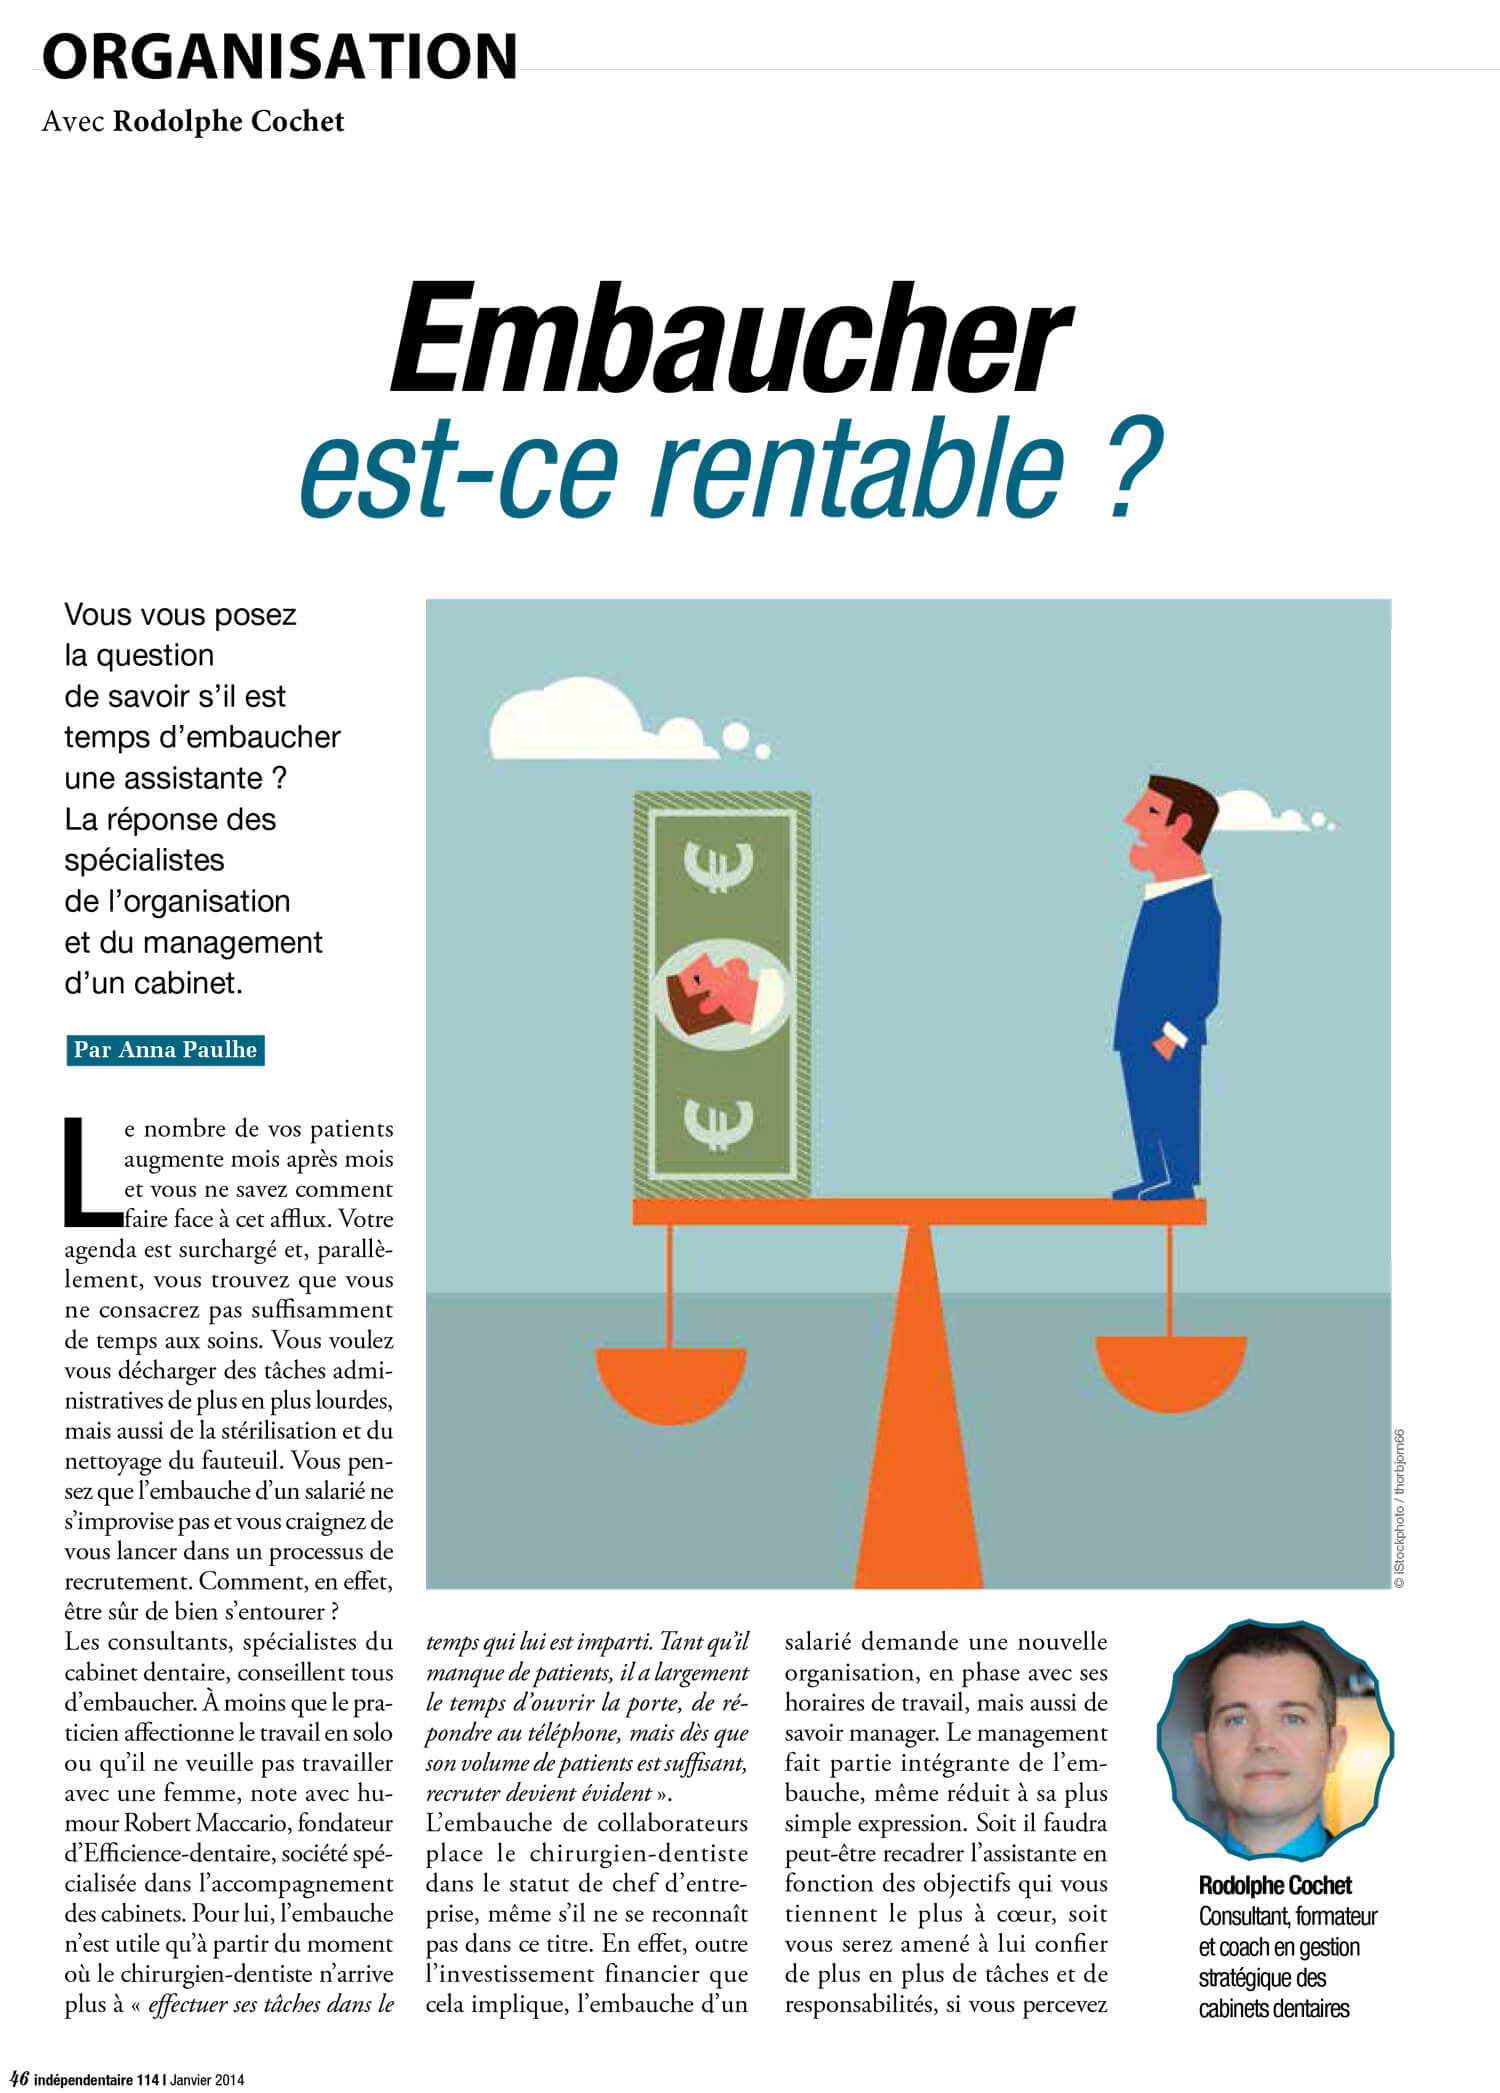 Recruter-assistante-dentaire-rentable-independentaire-rodolphe-cochet.jpg